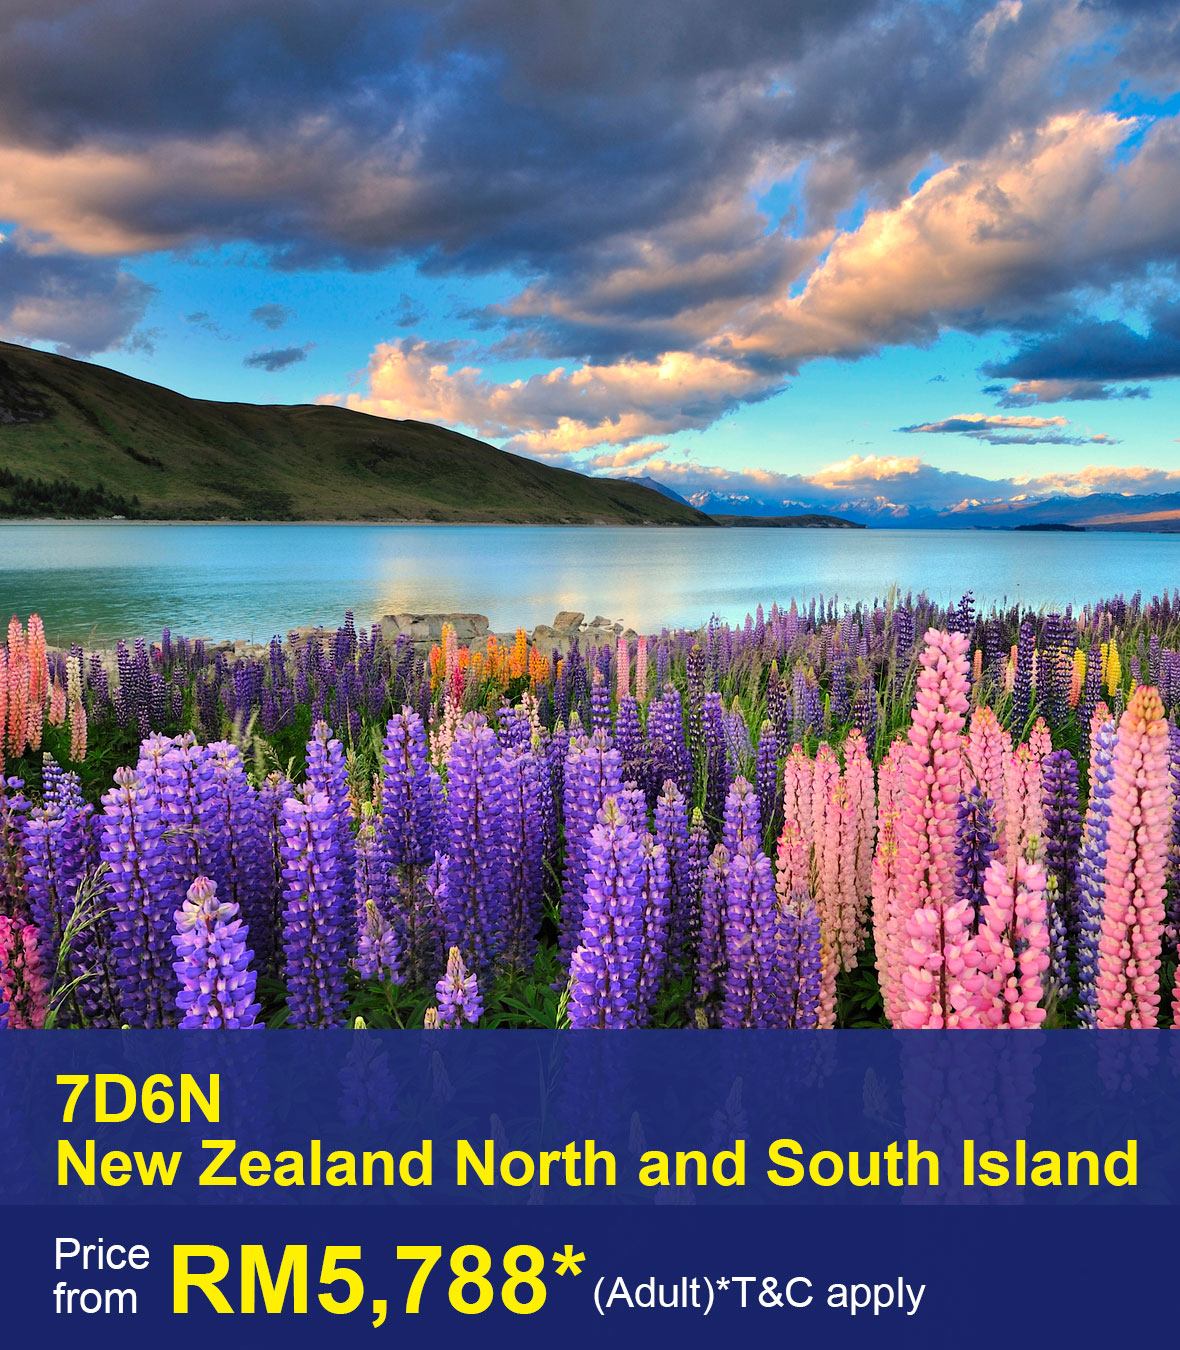 UOB-7D6N New Zealand North and South Island